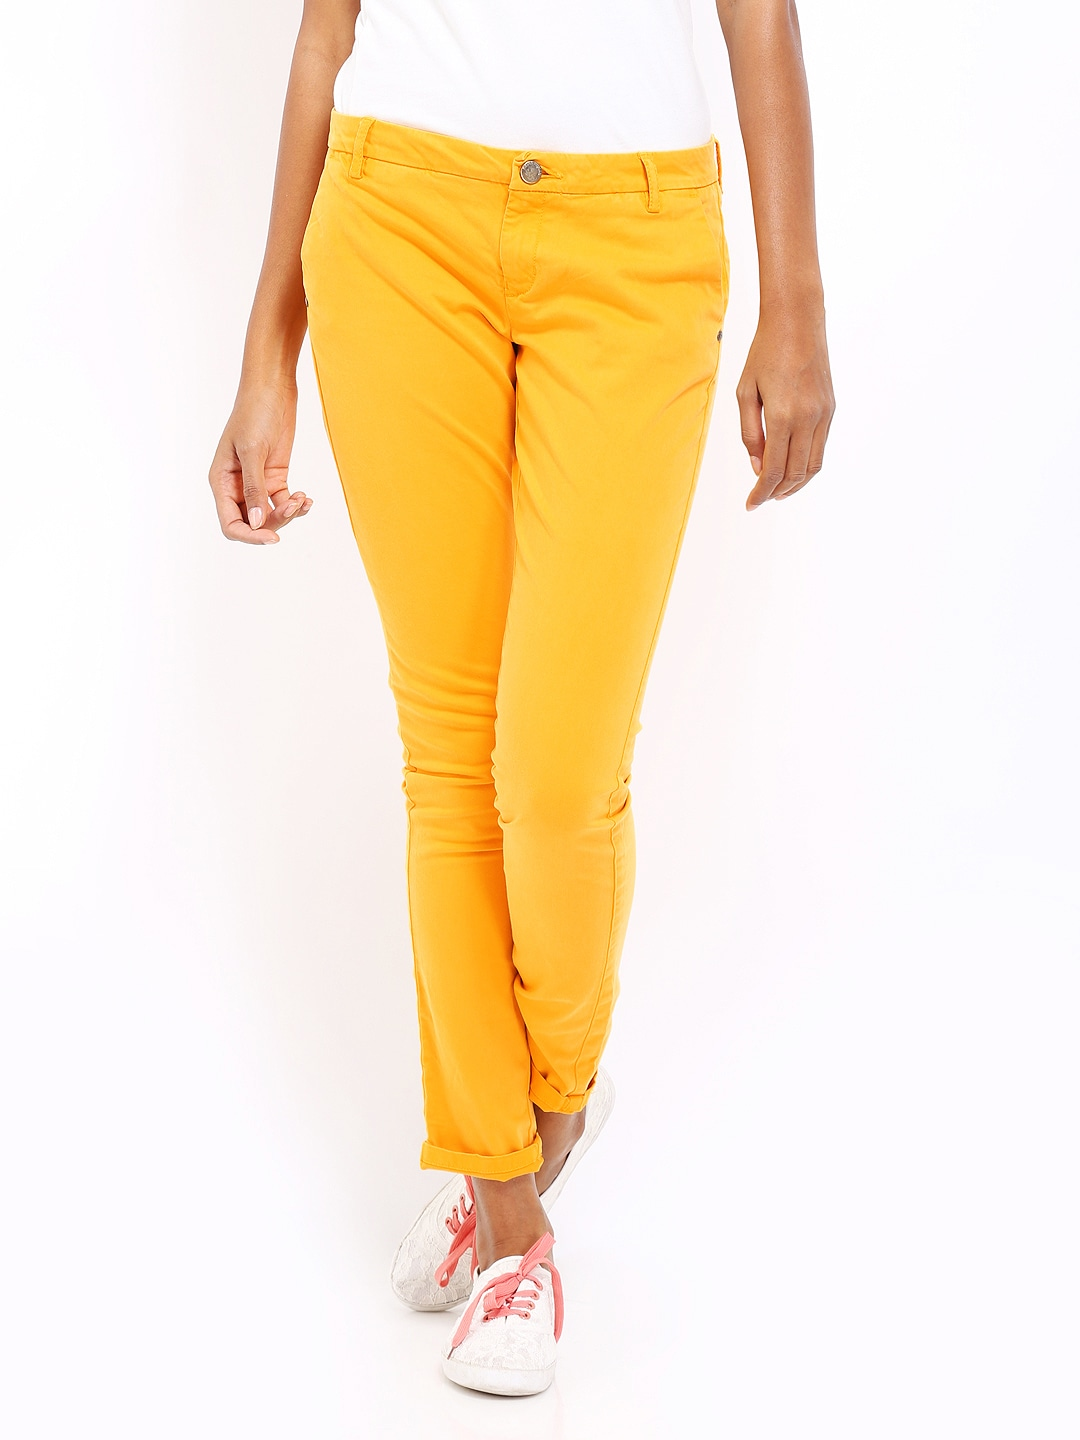 New Mustard Colored Womens Pants With Luxury Example U2013 Playzoa.com